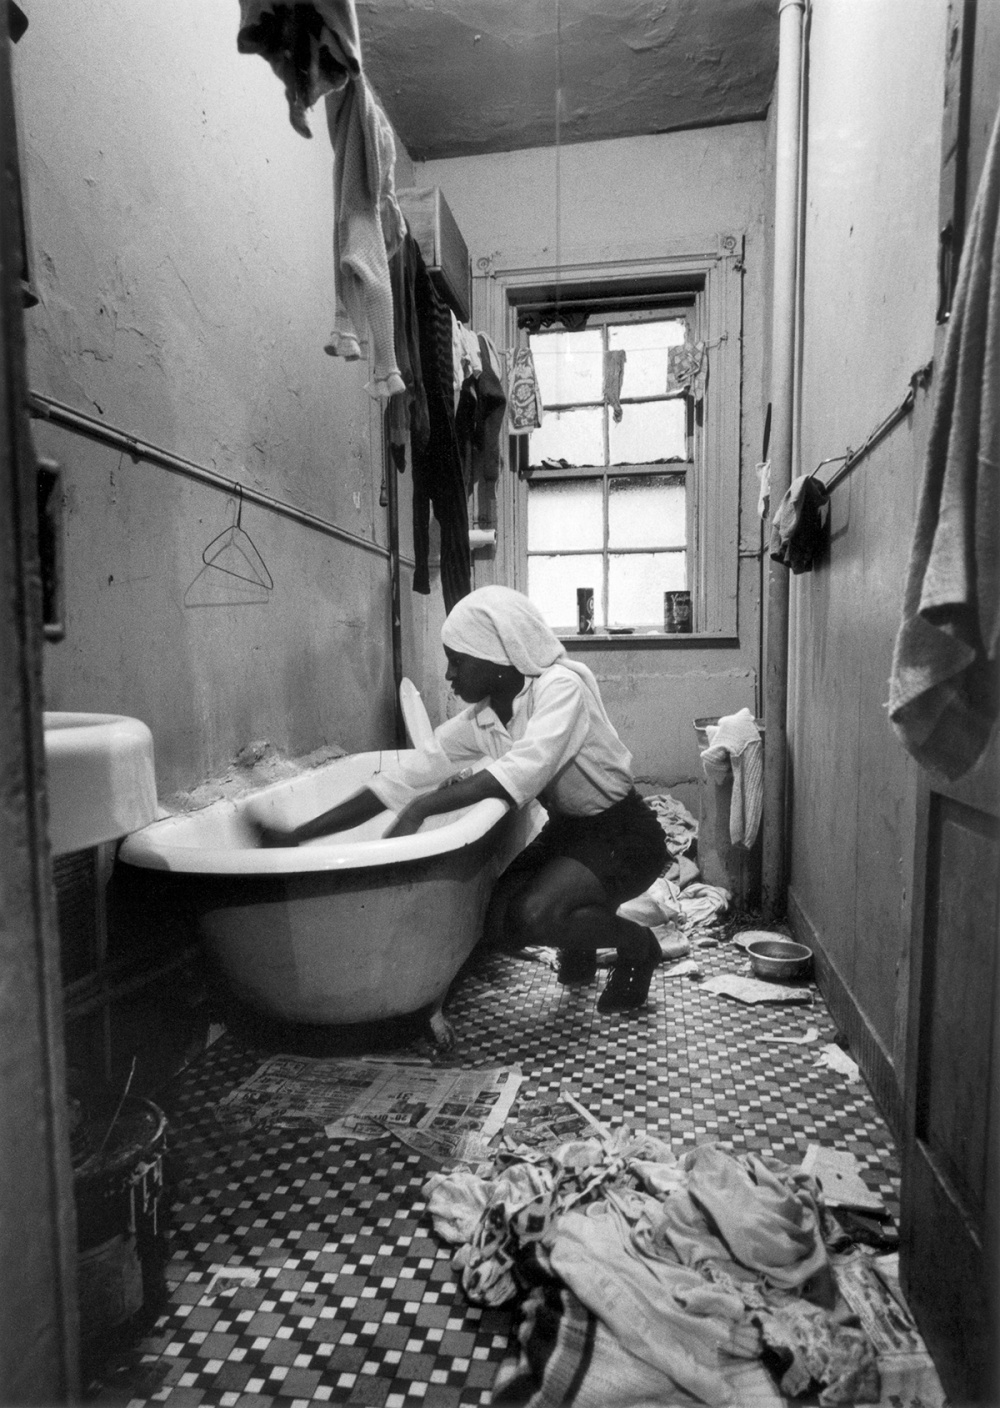 Gordon Parks, Rosie Fontenelle Cleans the Bathtub, New York, 1967. Gelatin silver print, 35.6 x 27.9cm. Courtesy of the Gordon Parks Foundation and Nicholas Metivier Gallery. © the Parks Foundation.